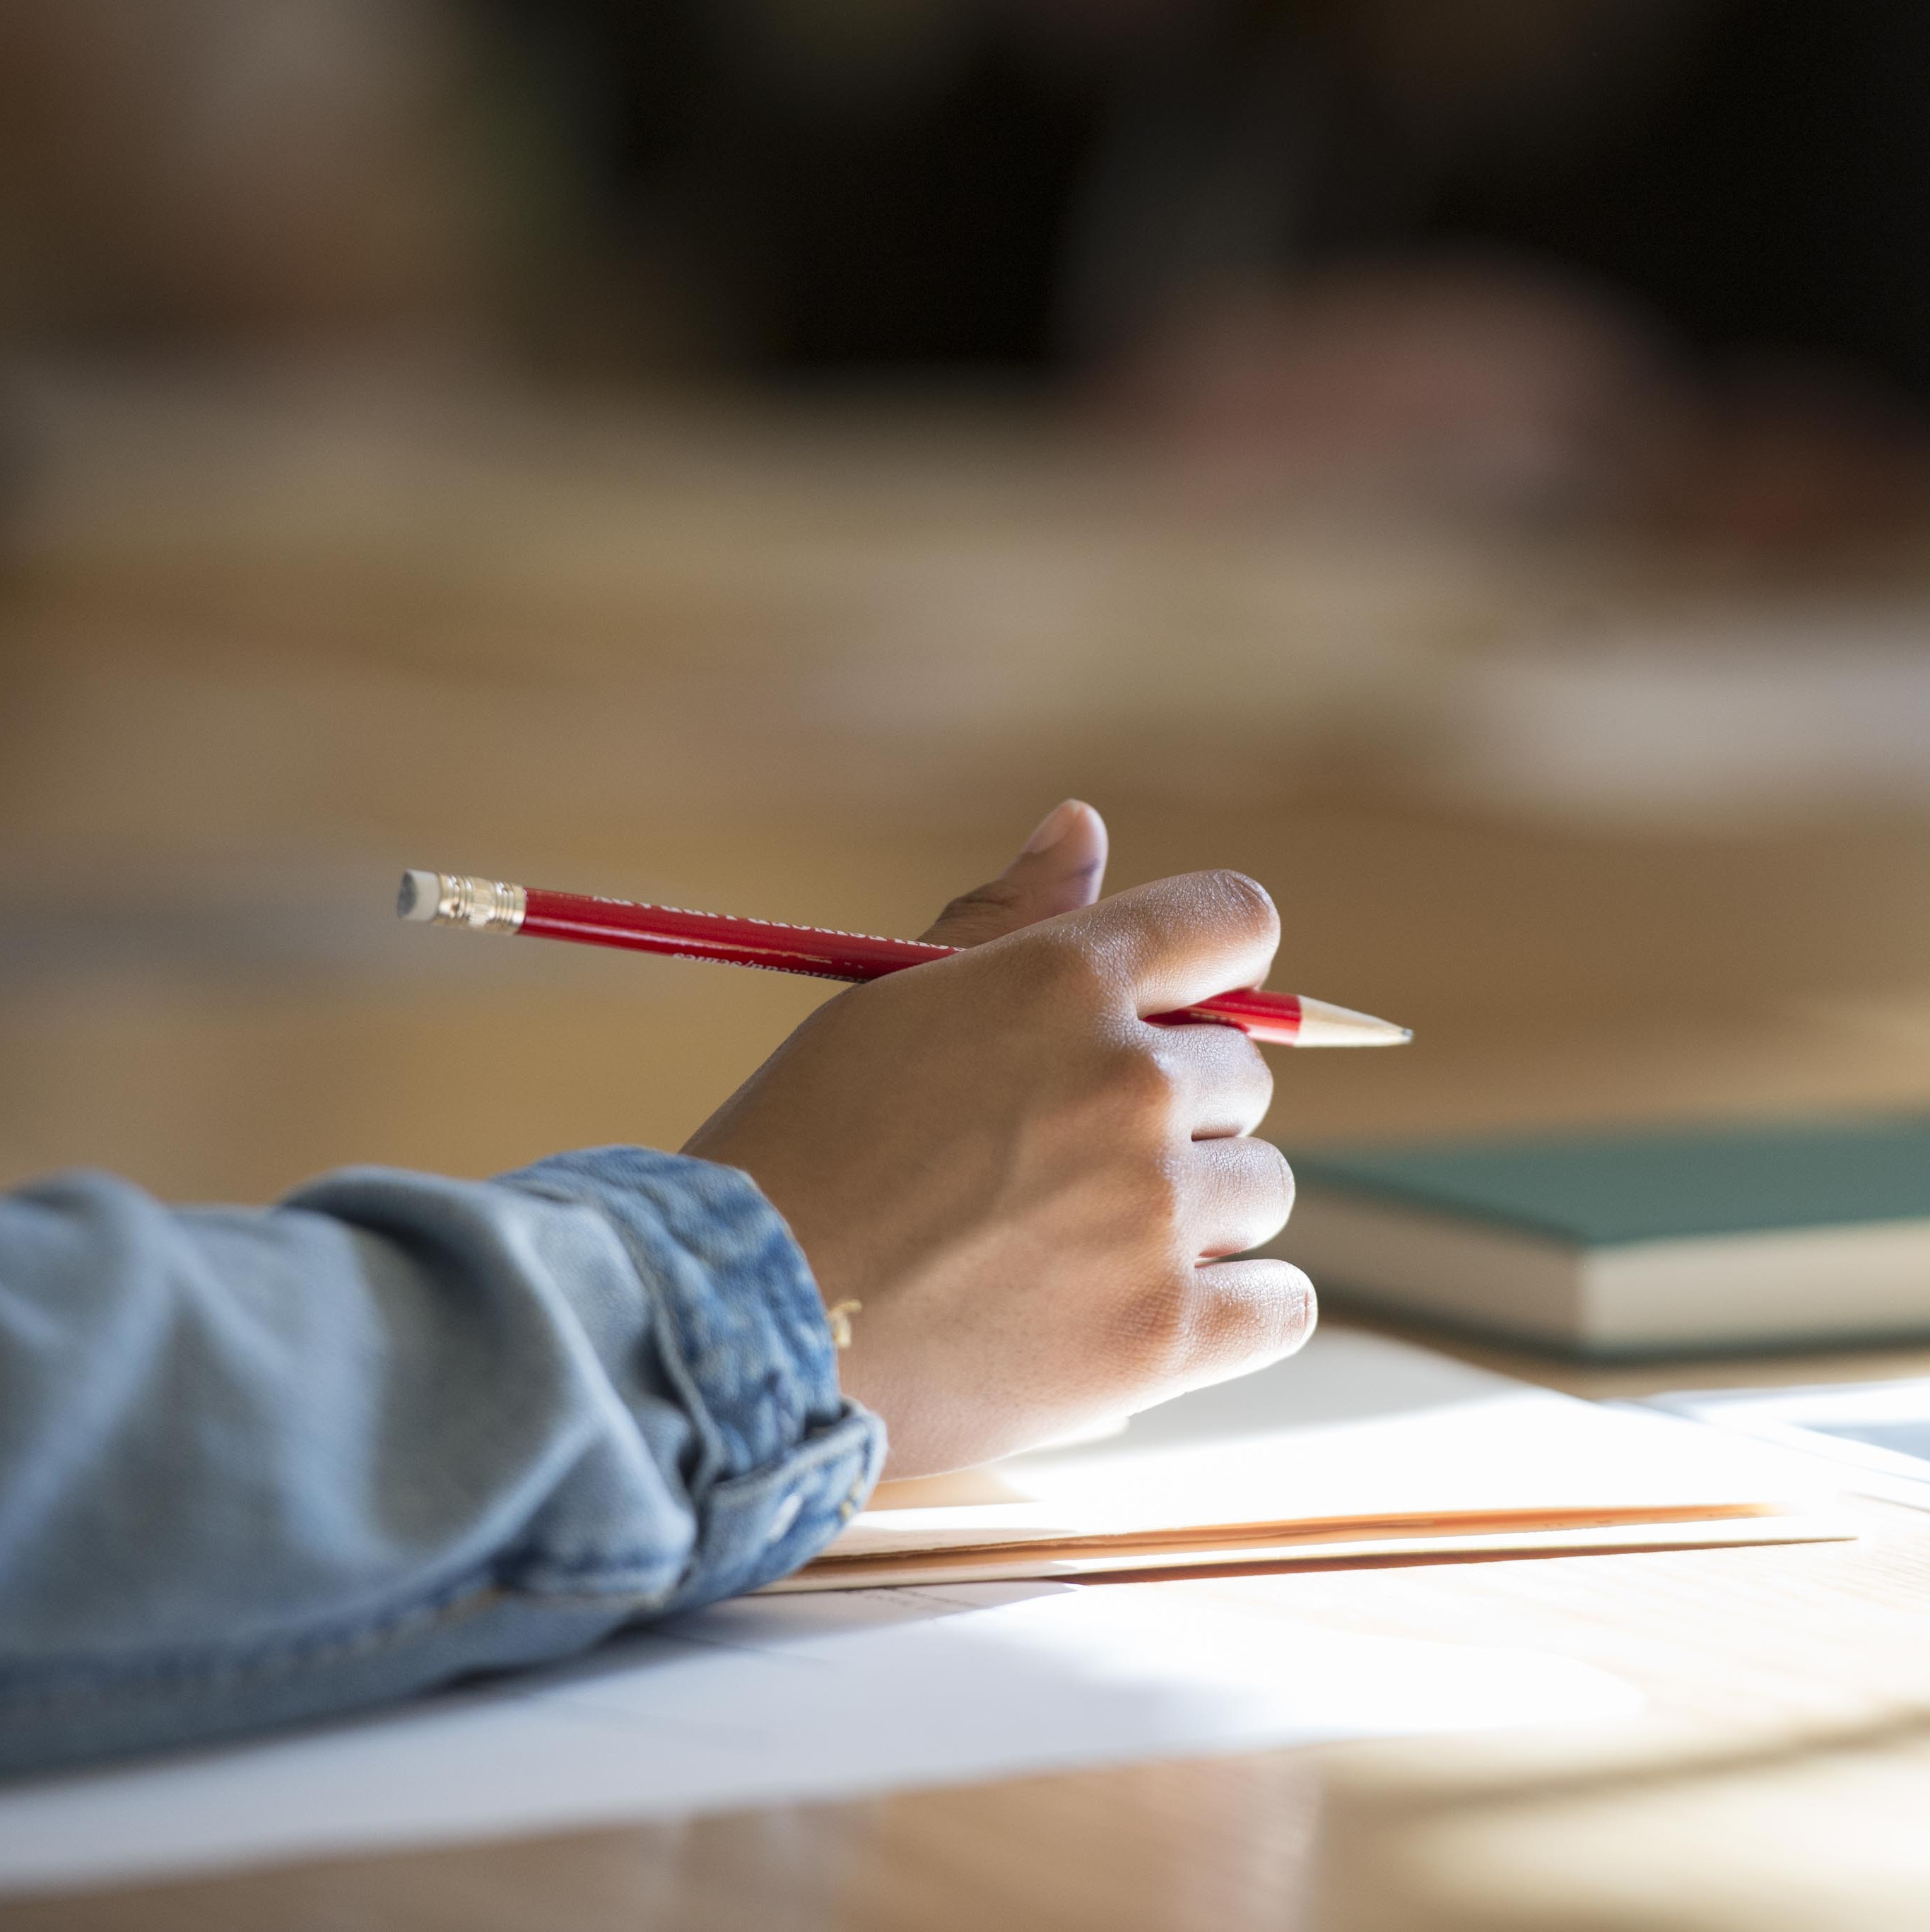 Close-up of a researcher's hand holding a pencil with books and papers in the background.